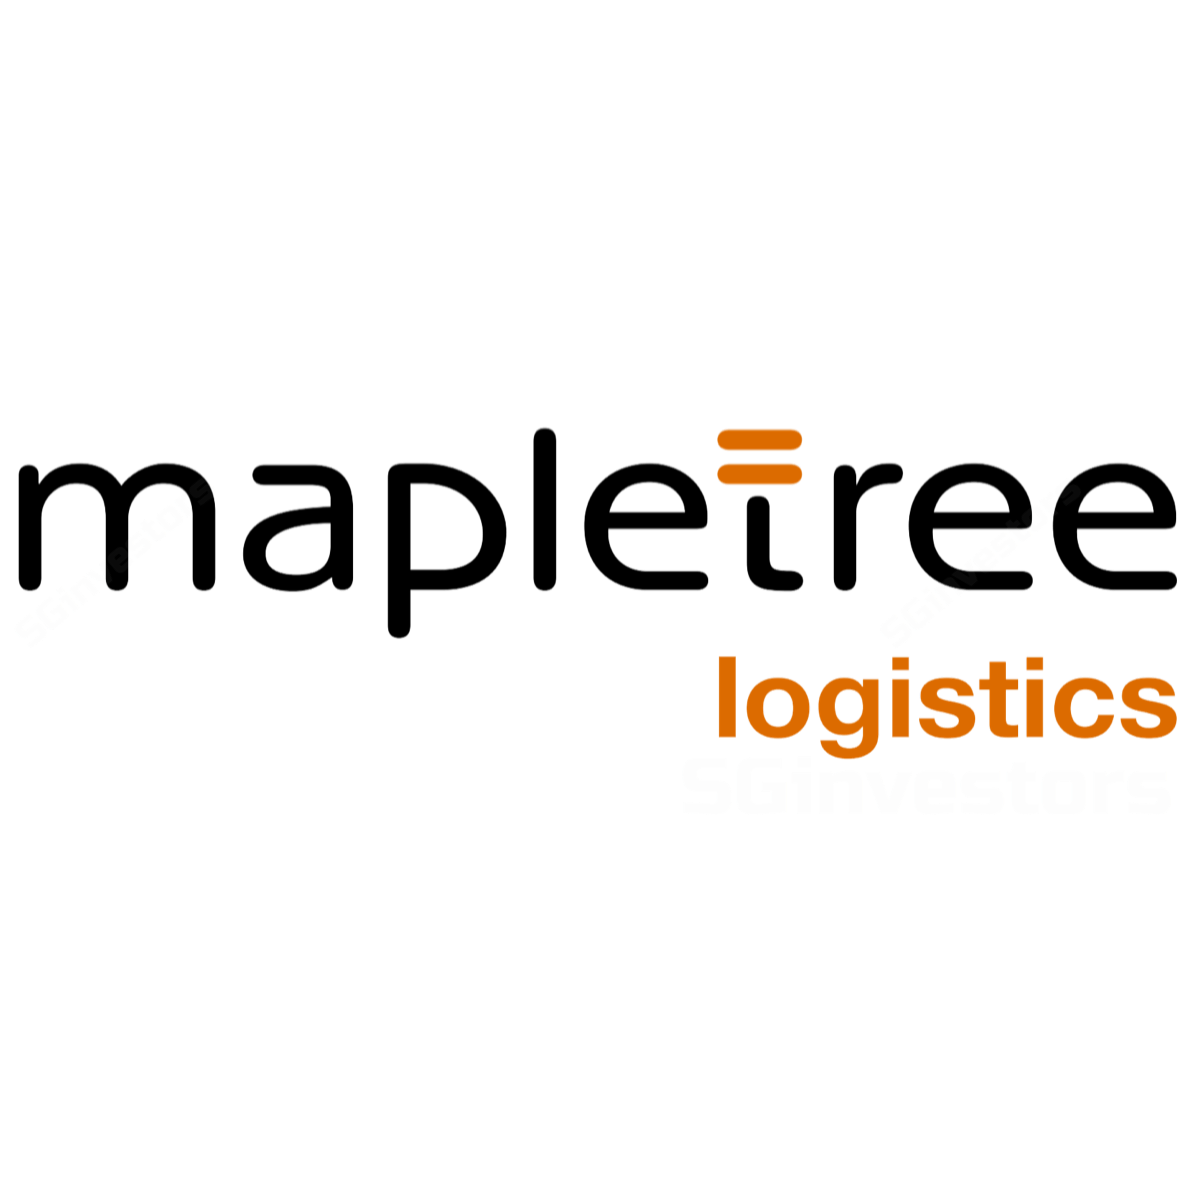 Mapletree Logistics Trust - DBS Vickers 2017-07-26: Stay On For The Ride